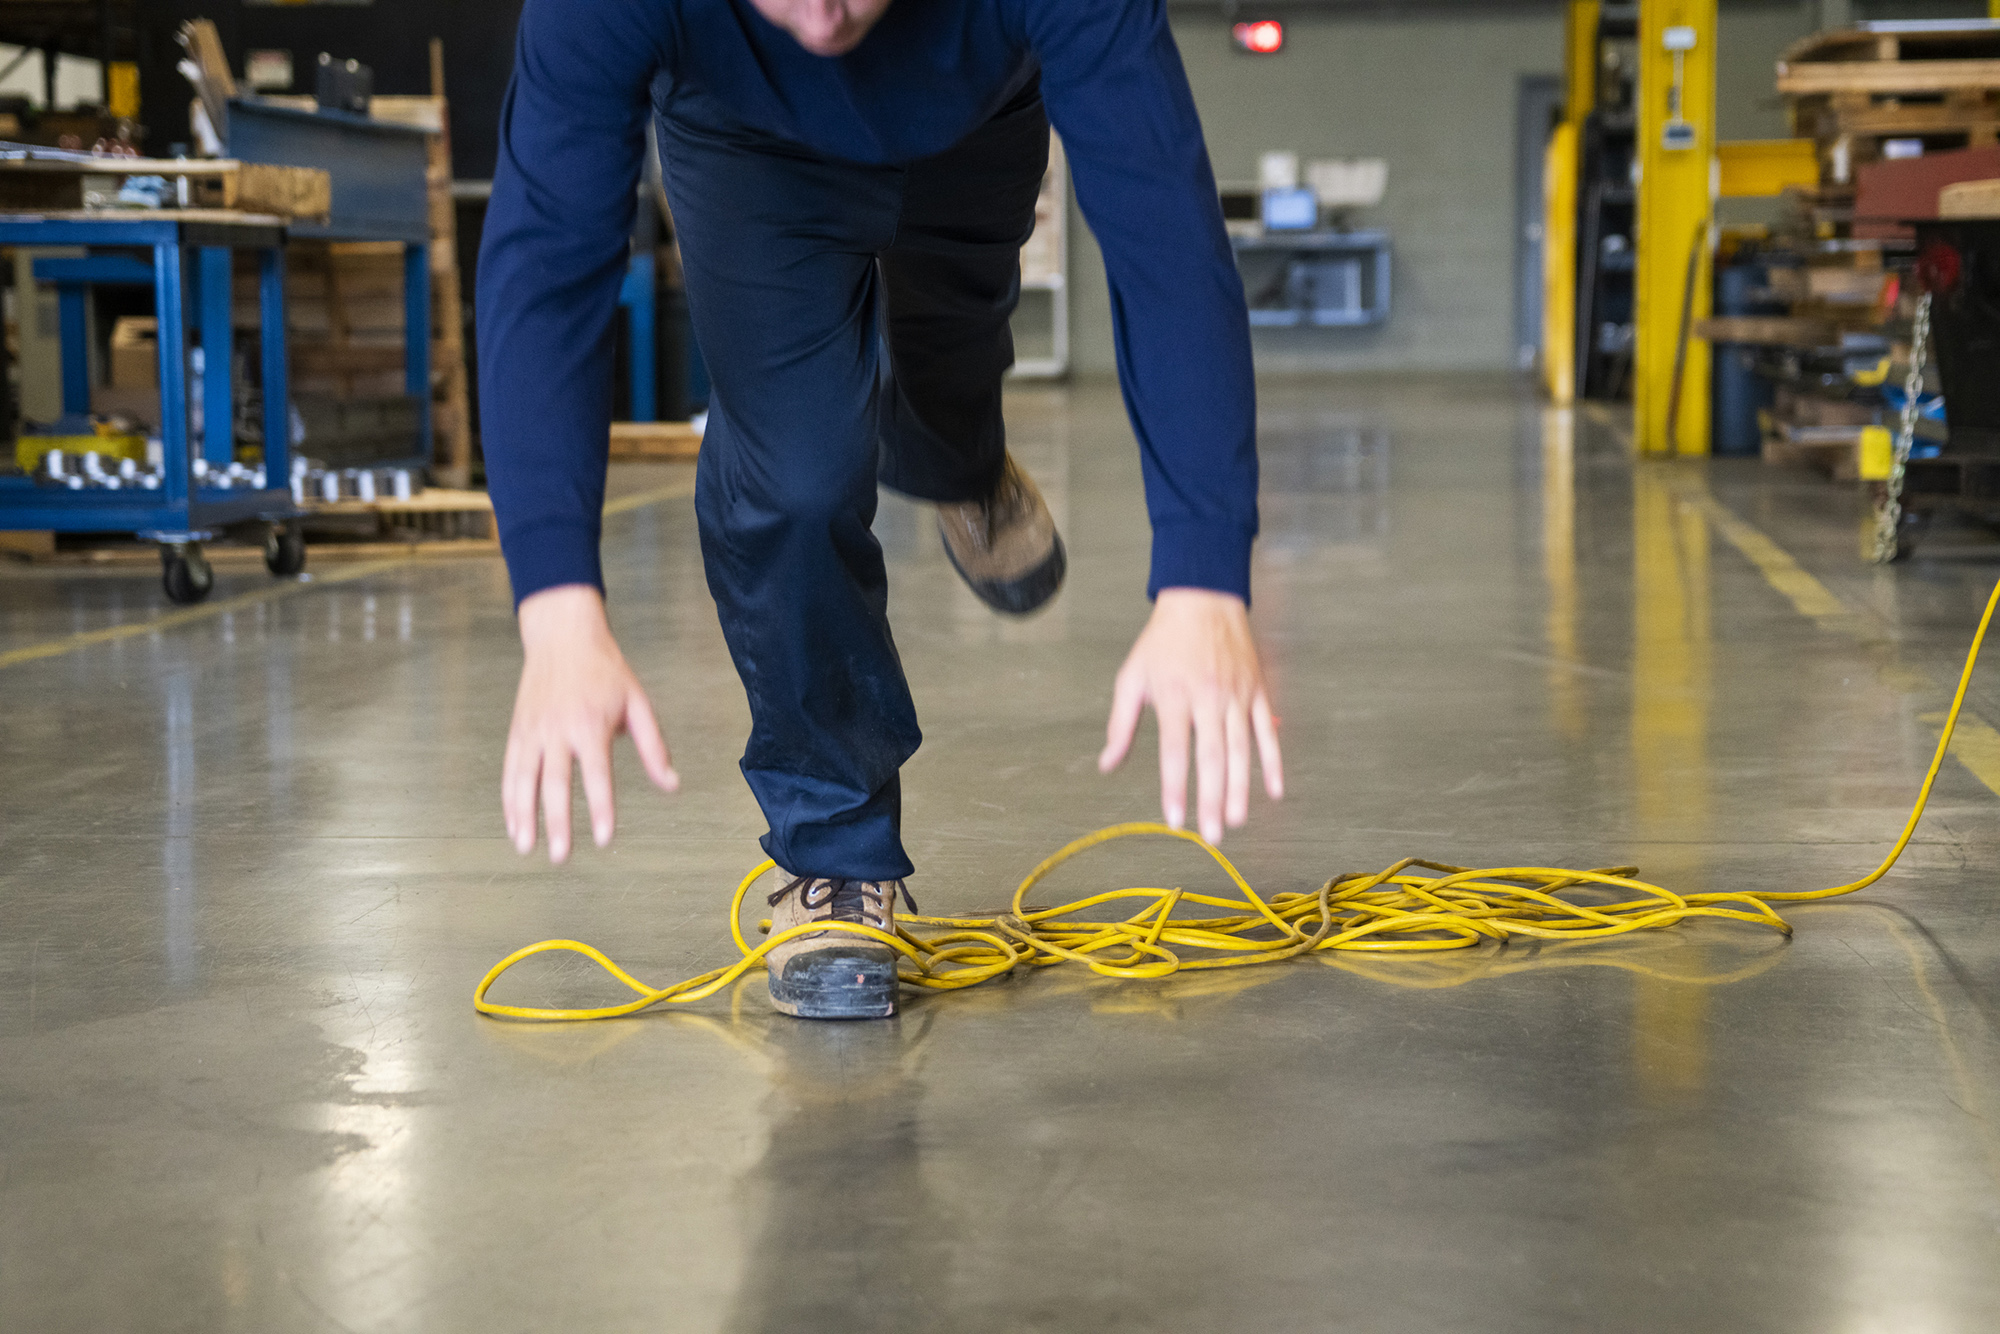 worker tripping over a electrical cord and needs a slip and fall accident lawyer